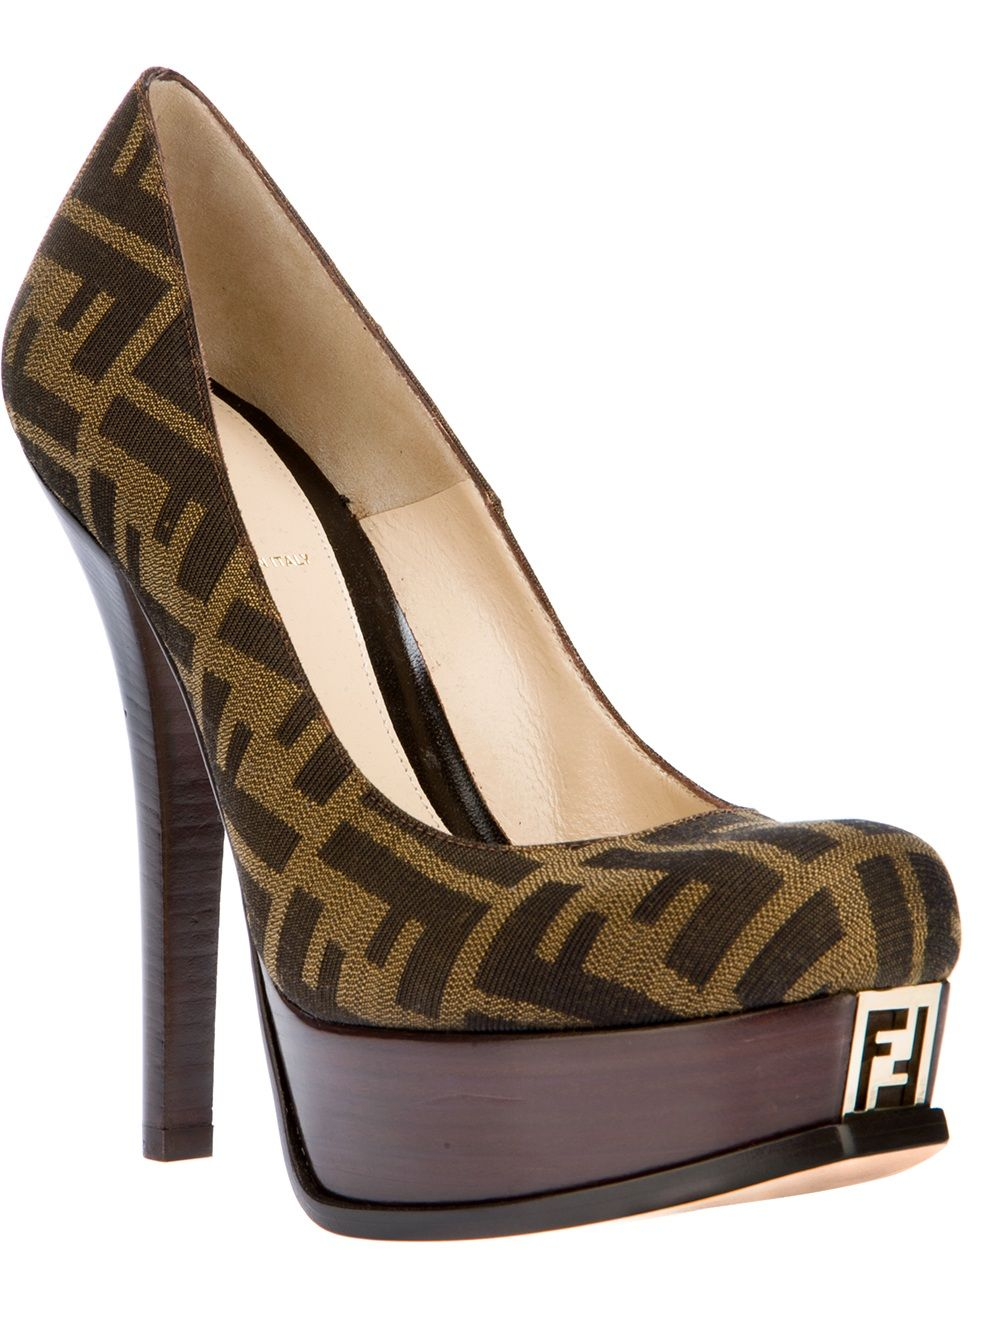 aa2d63fb65b Tobacco brown cotton pumps from Fendi featuring a round toe